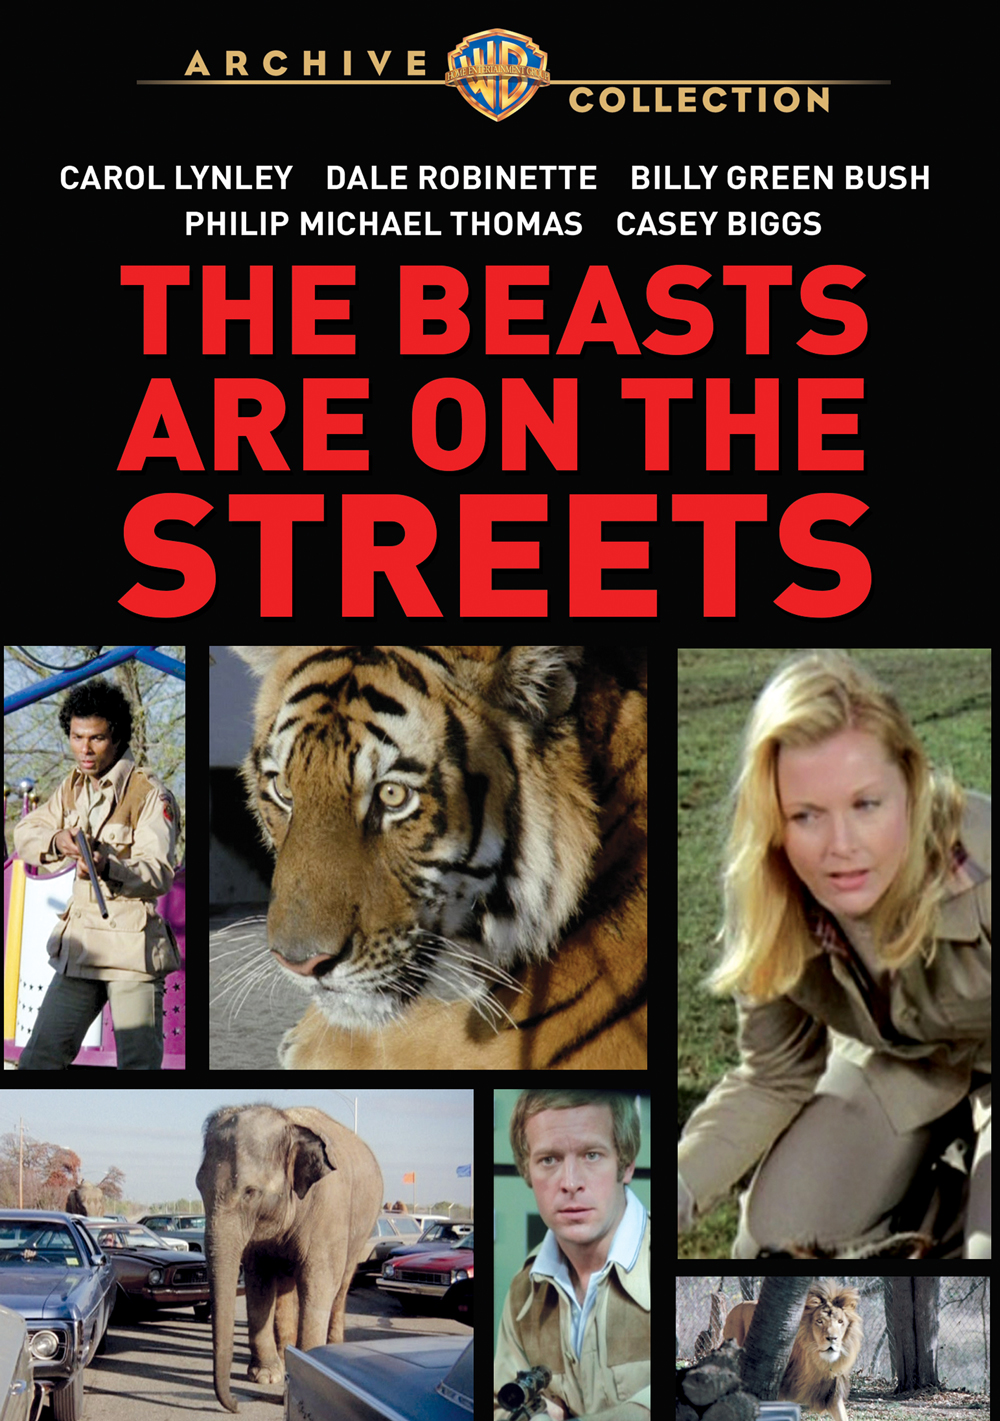 The Beasts Are On Streets Tv Movie 1978 Imdb Phillips 7 Pin Trailer Connector Wiring Diagram